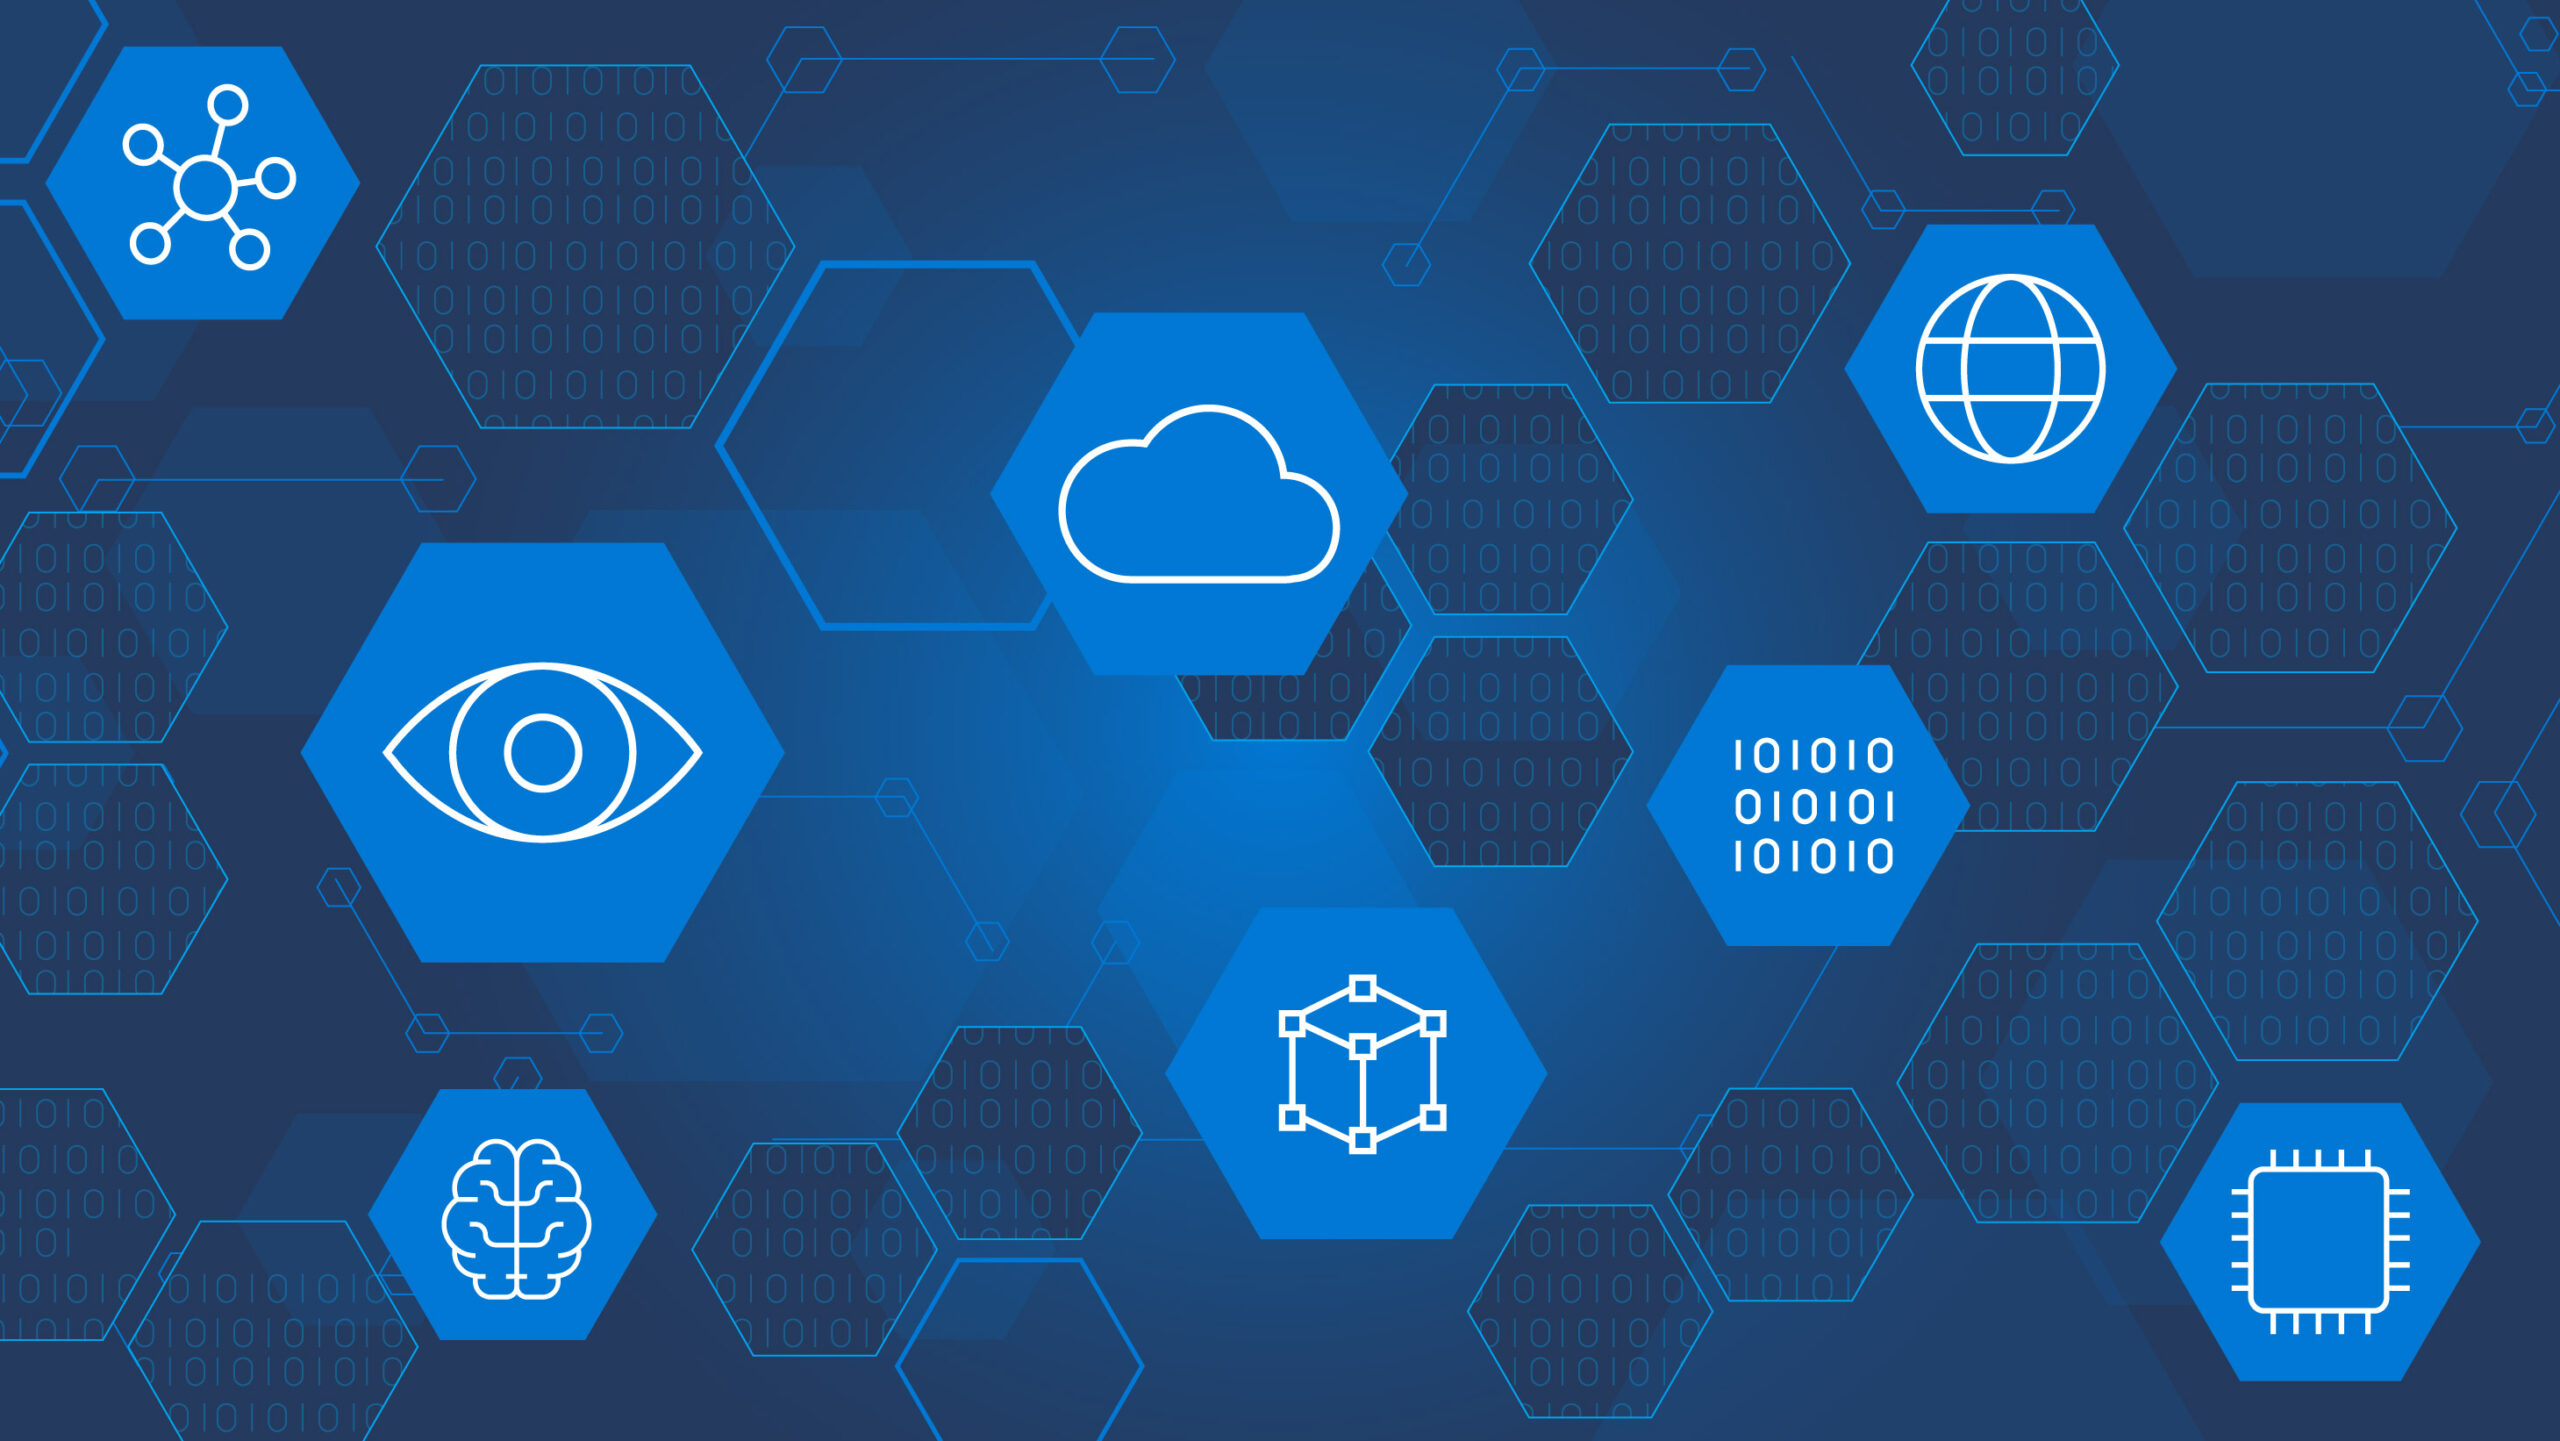 Graphic shows blue background with hexagons that each have a icon related to technology concepts i.e. cloud, binary code, eye, microchip, etc.